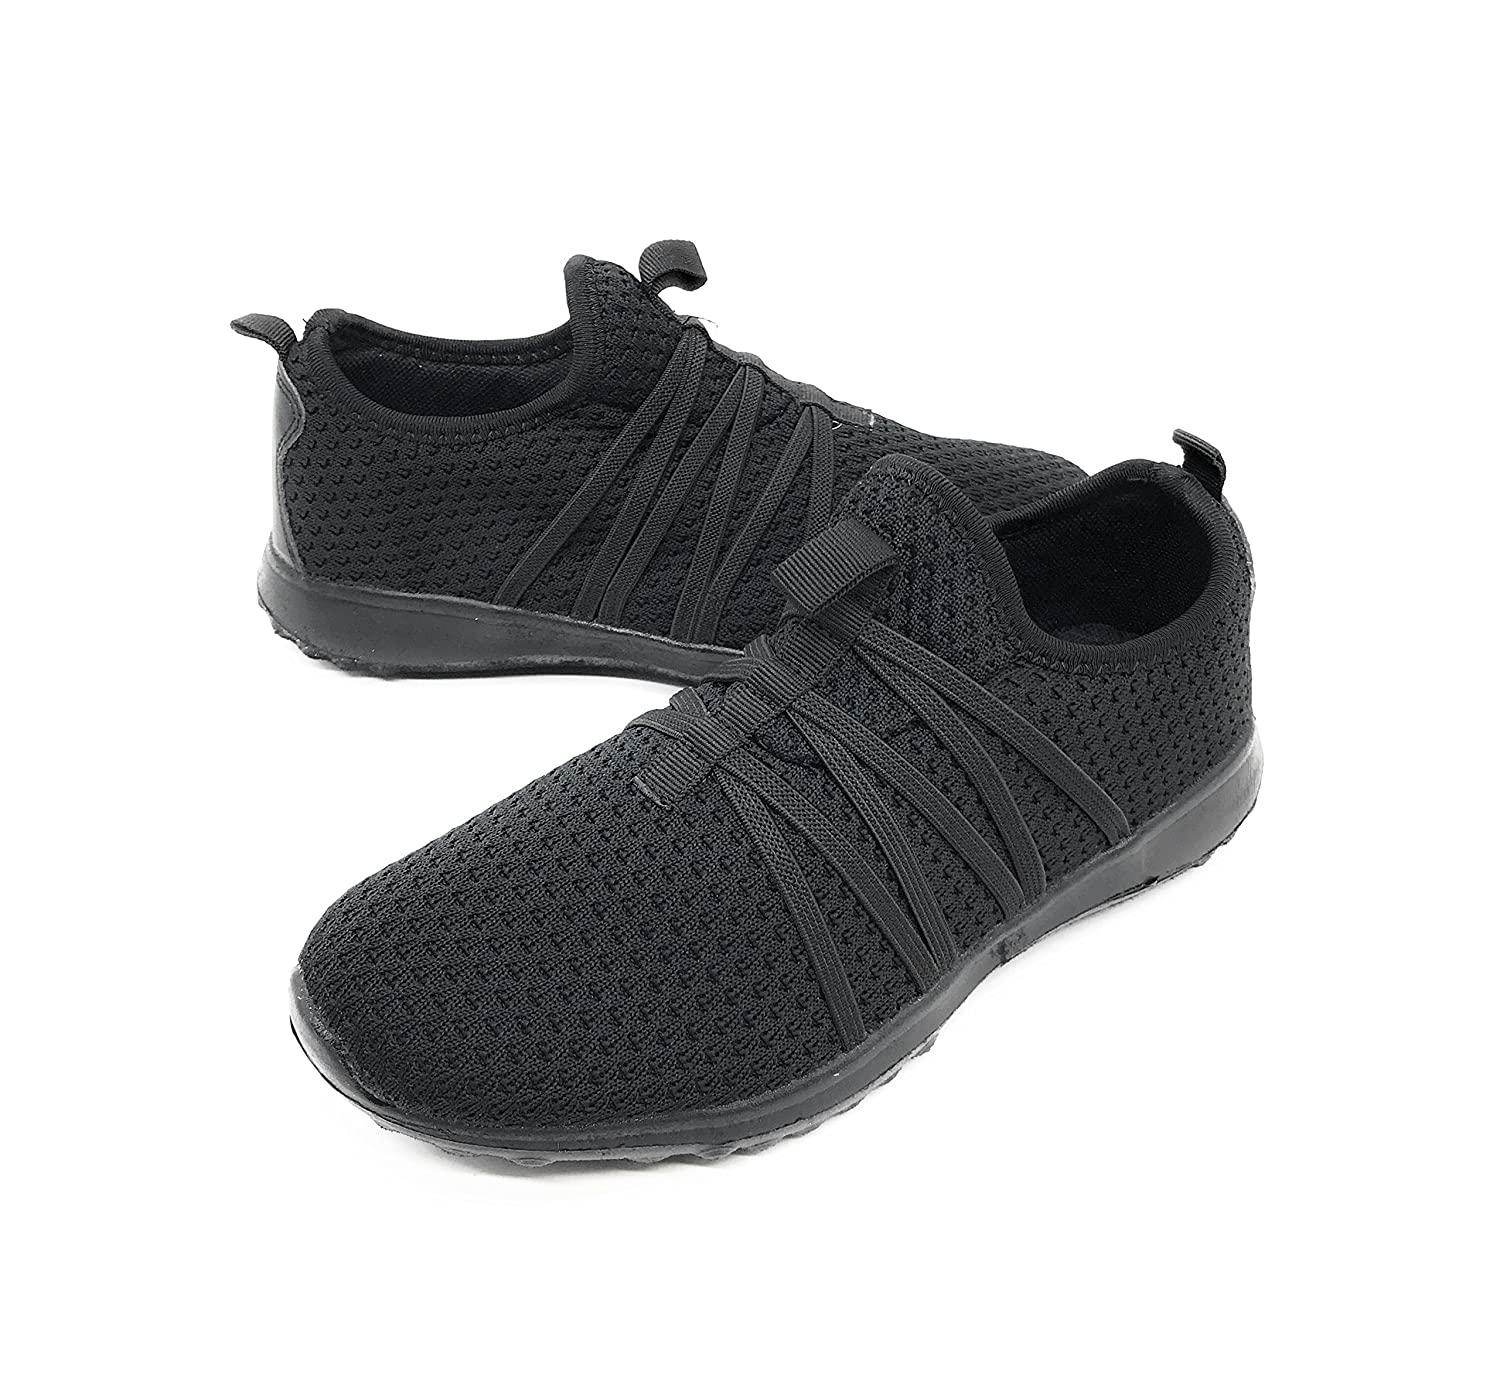 Blue Berry EASY21 Women Casual Fashion Sneakers Breathable Athletic Sports Light Weight Shoes B079VSX7SS 7 B(M) US|All Black01